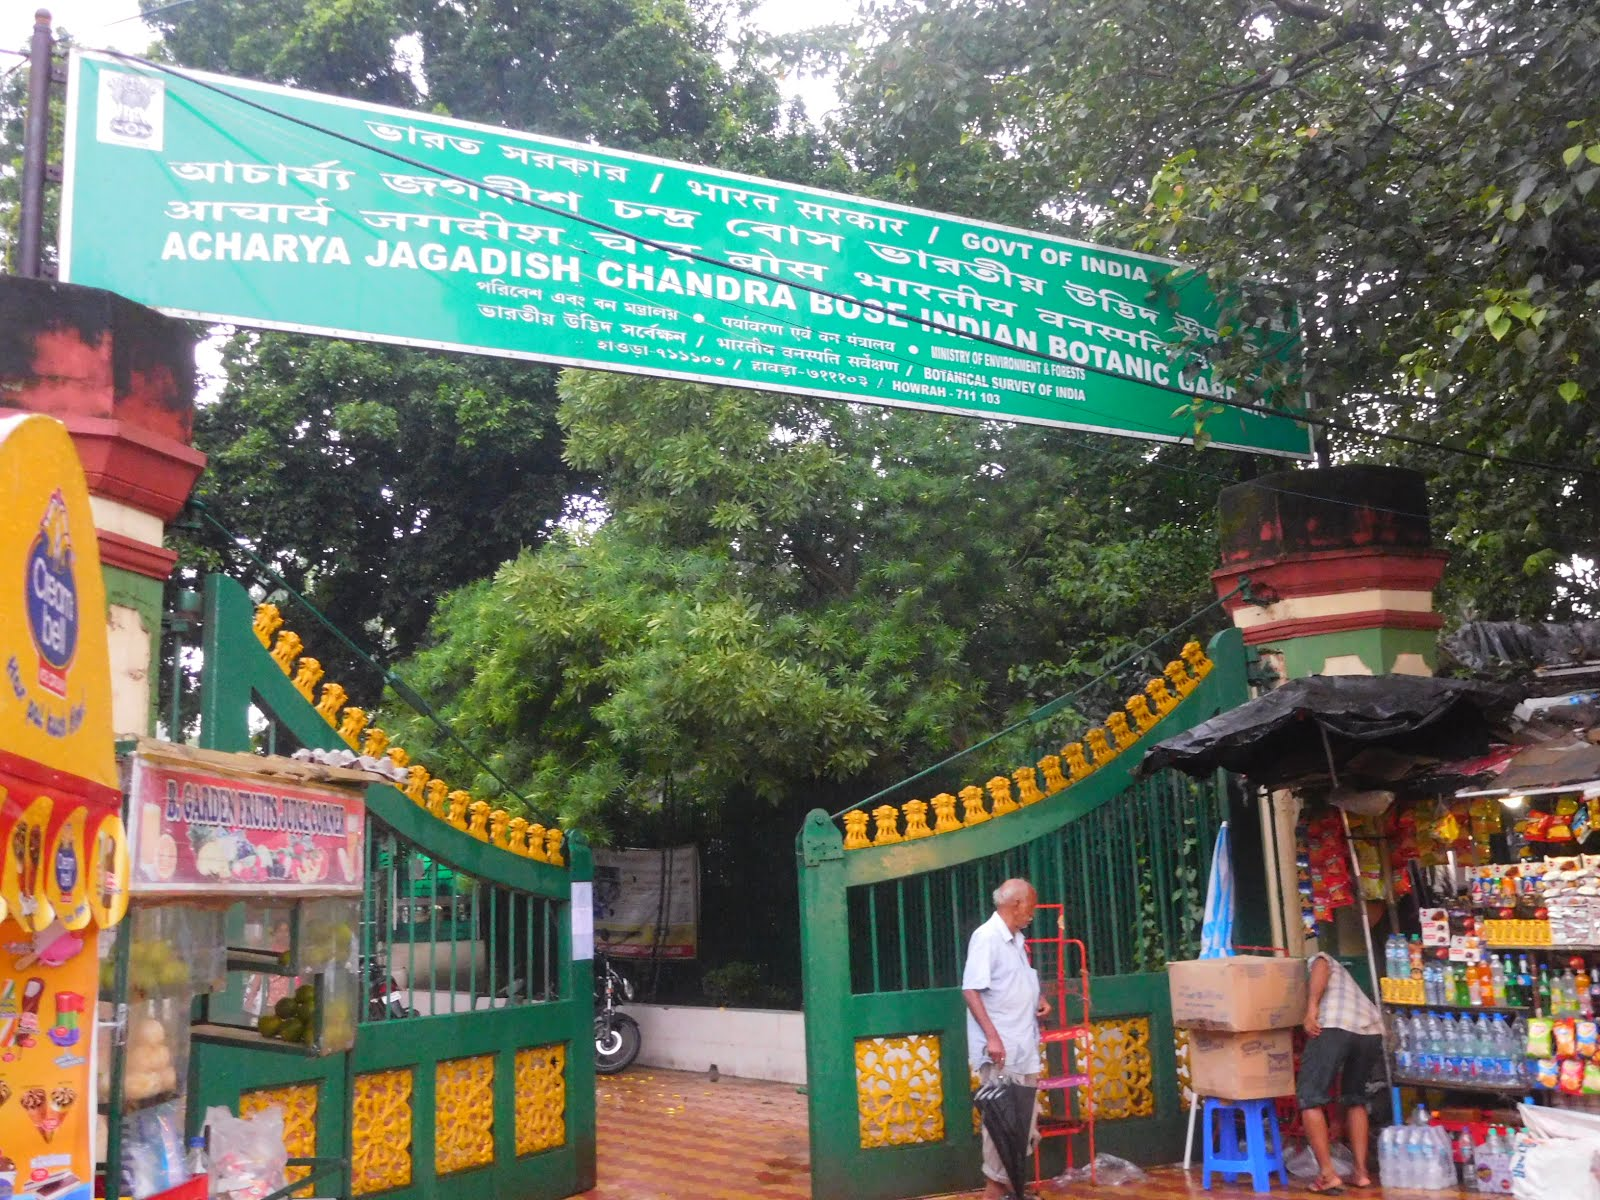 The Main Gate, Adjacent To The Bus Stand